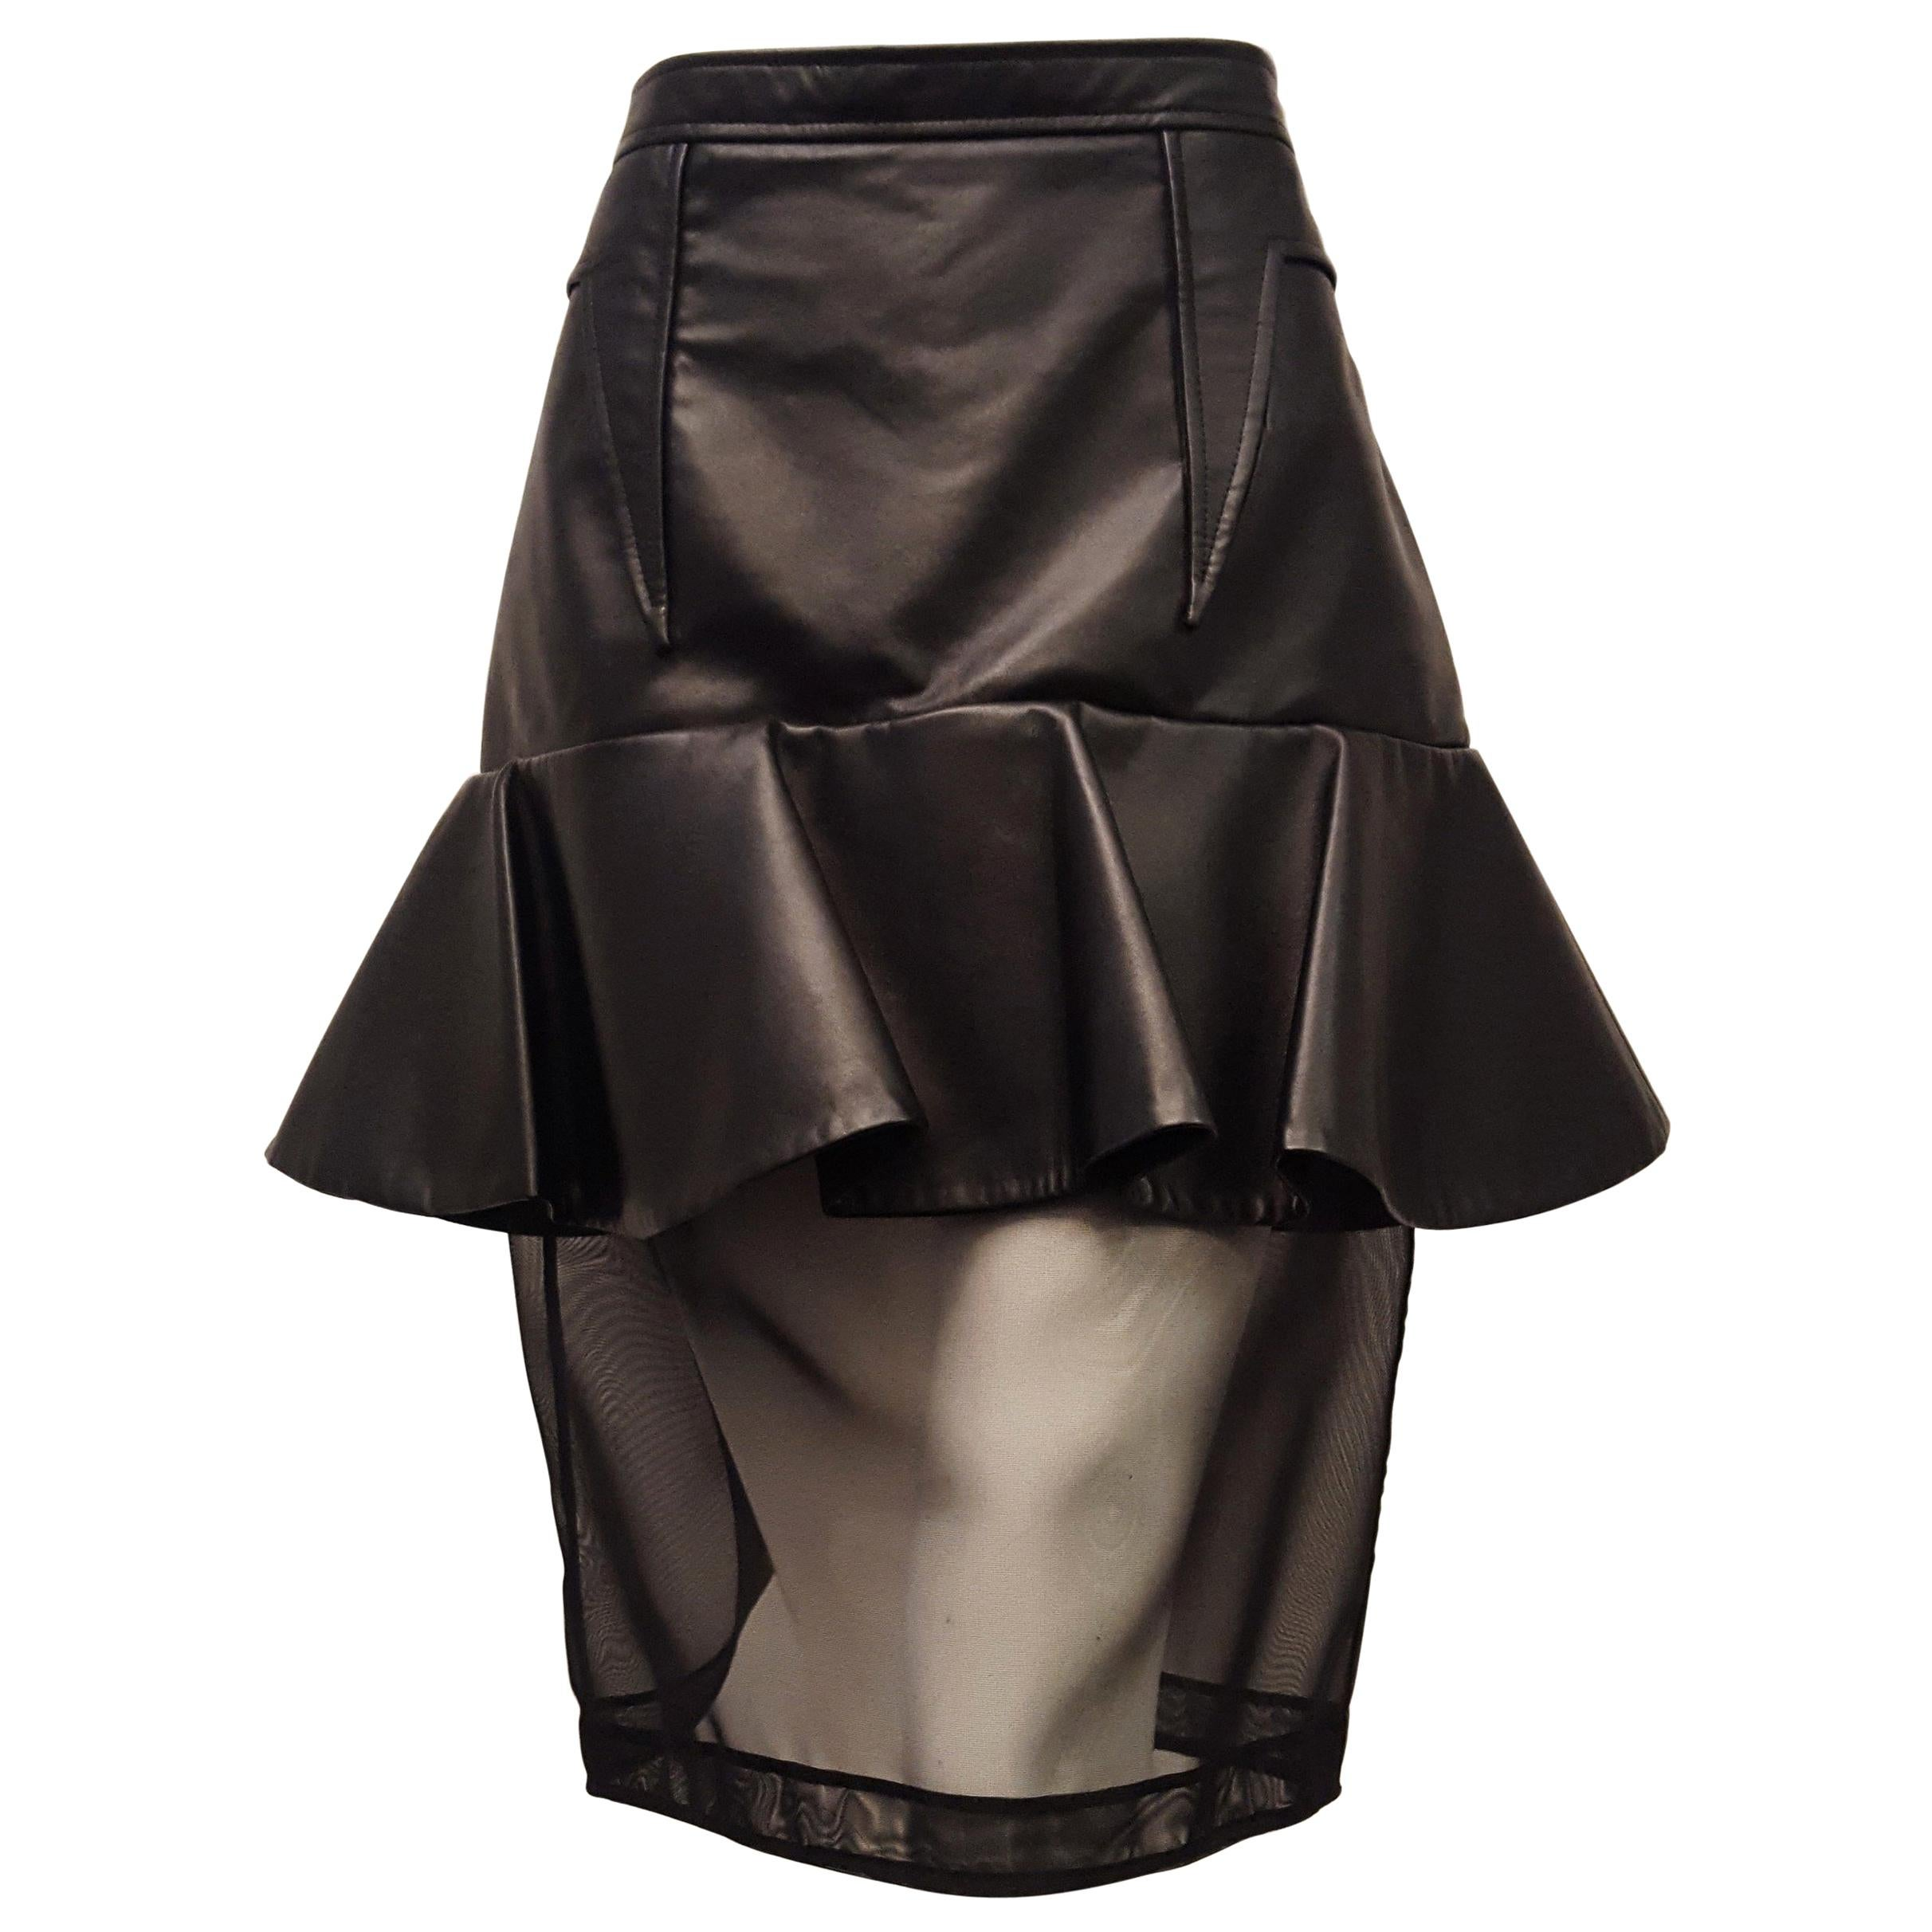 Givenchy Black Leather and Mesh Ruffled Skirt 44 EU